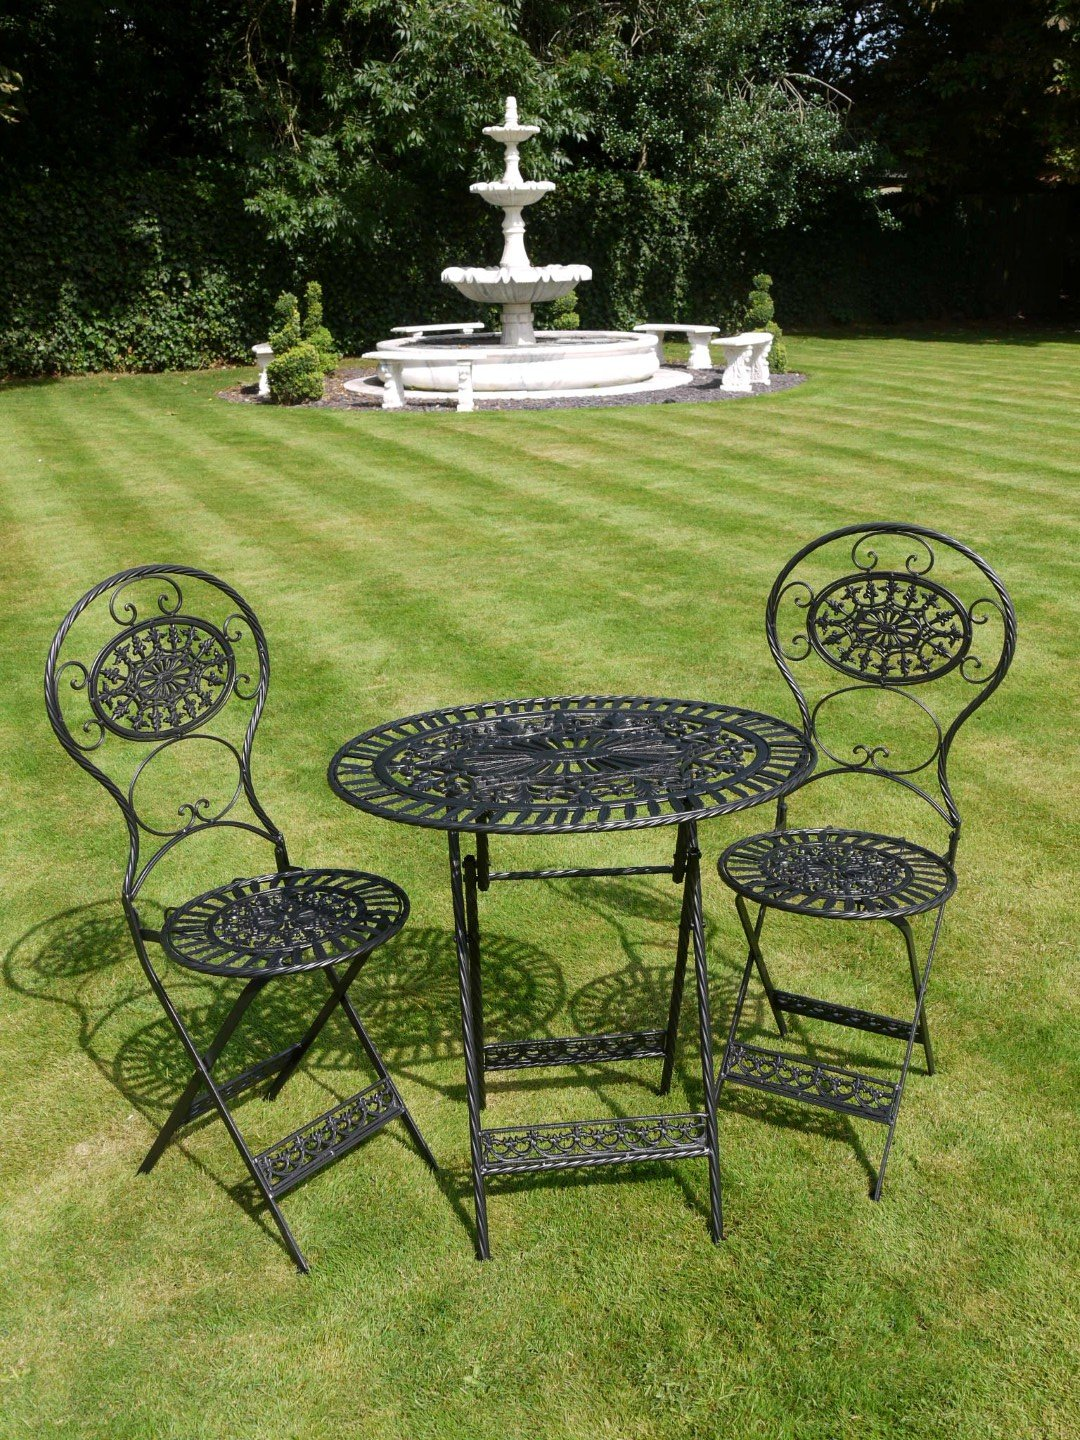 French bistro chairs metal - Black Wrought Iron 3 Piece Bistro Style Garden Patio Furniture Set